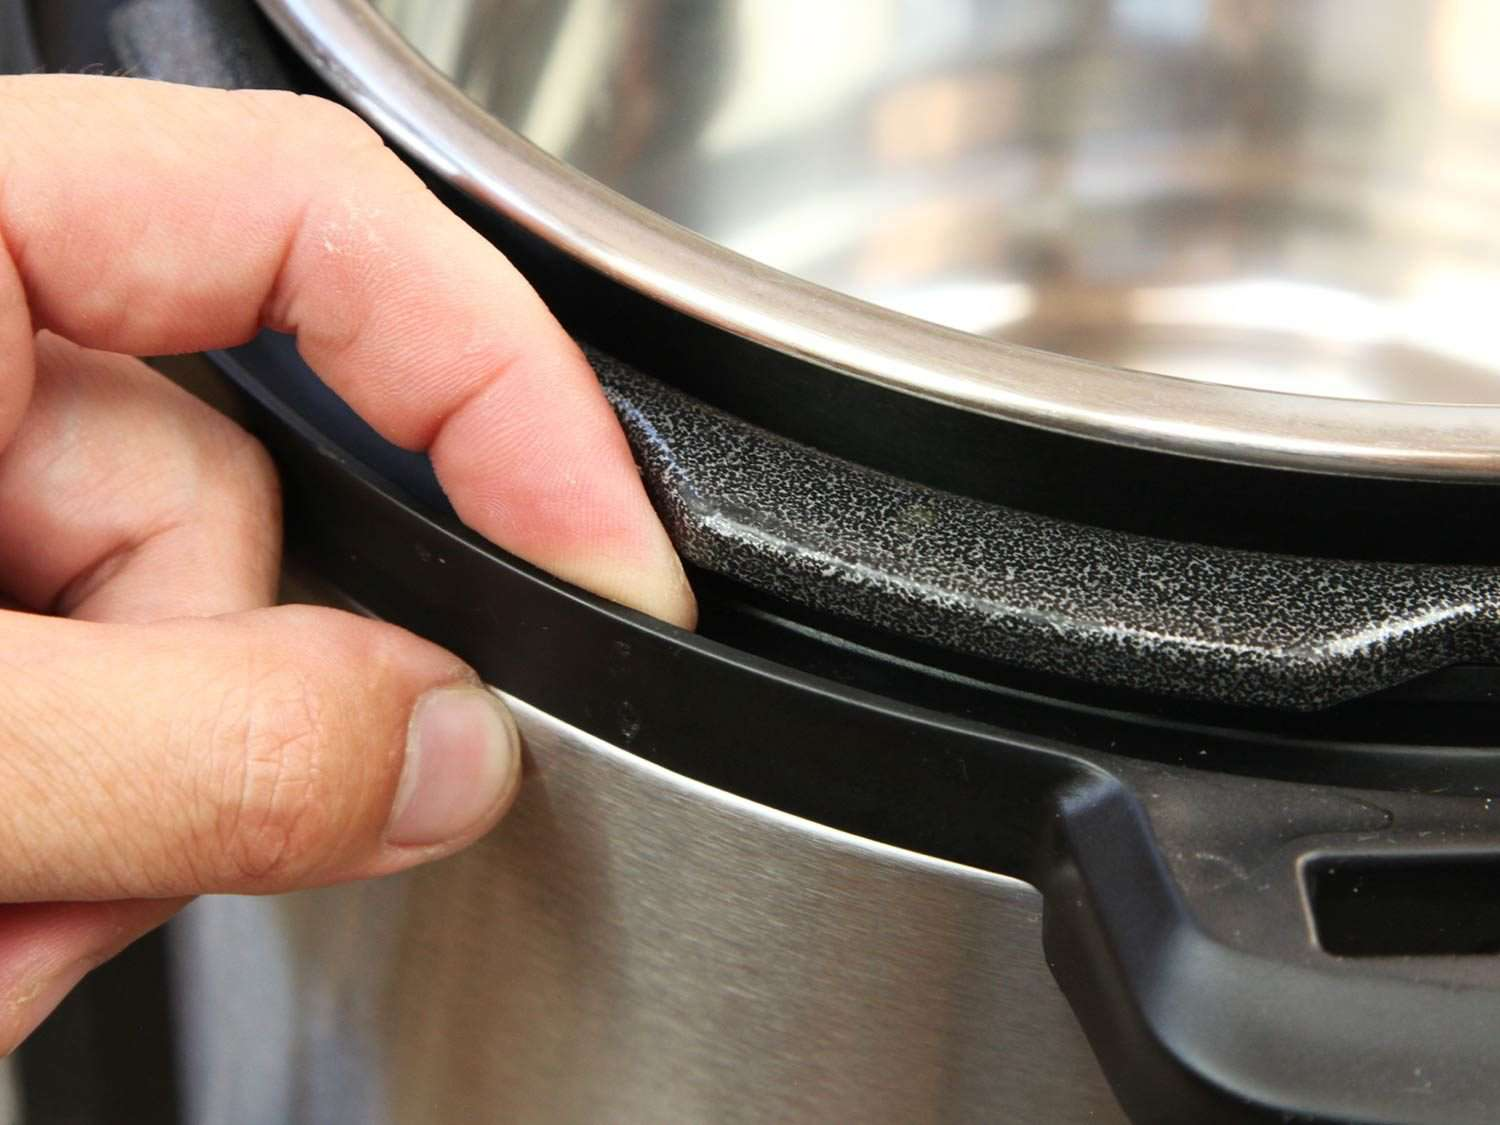 Finger in narrow crevice along lip of Instant Pot